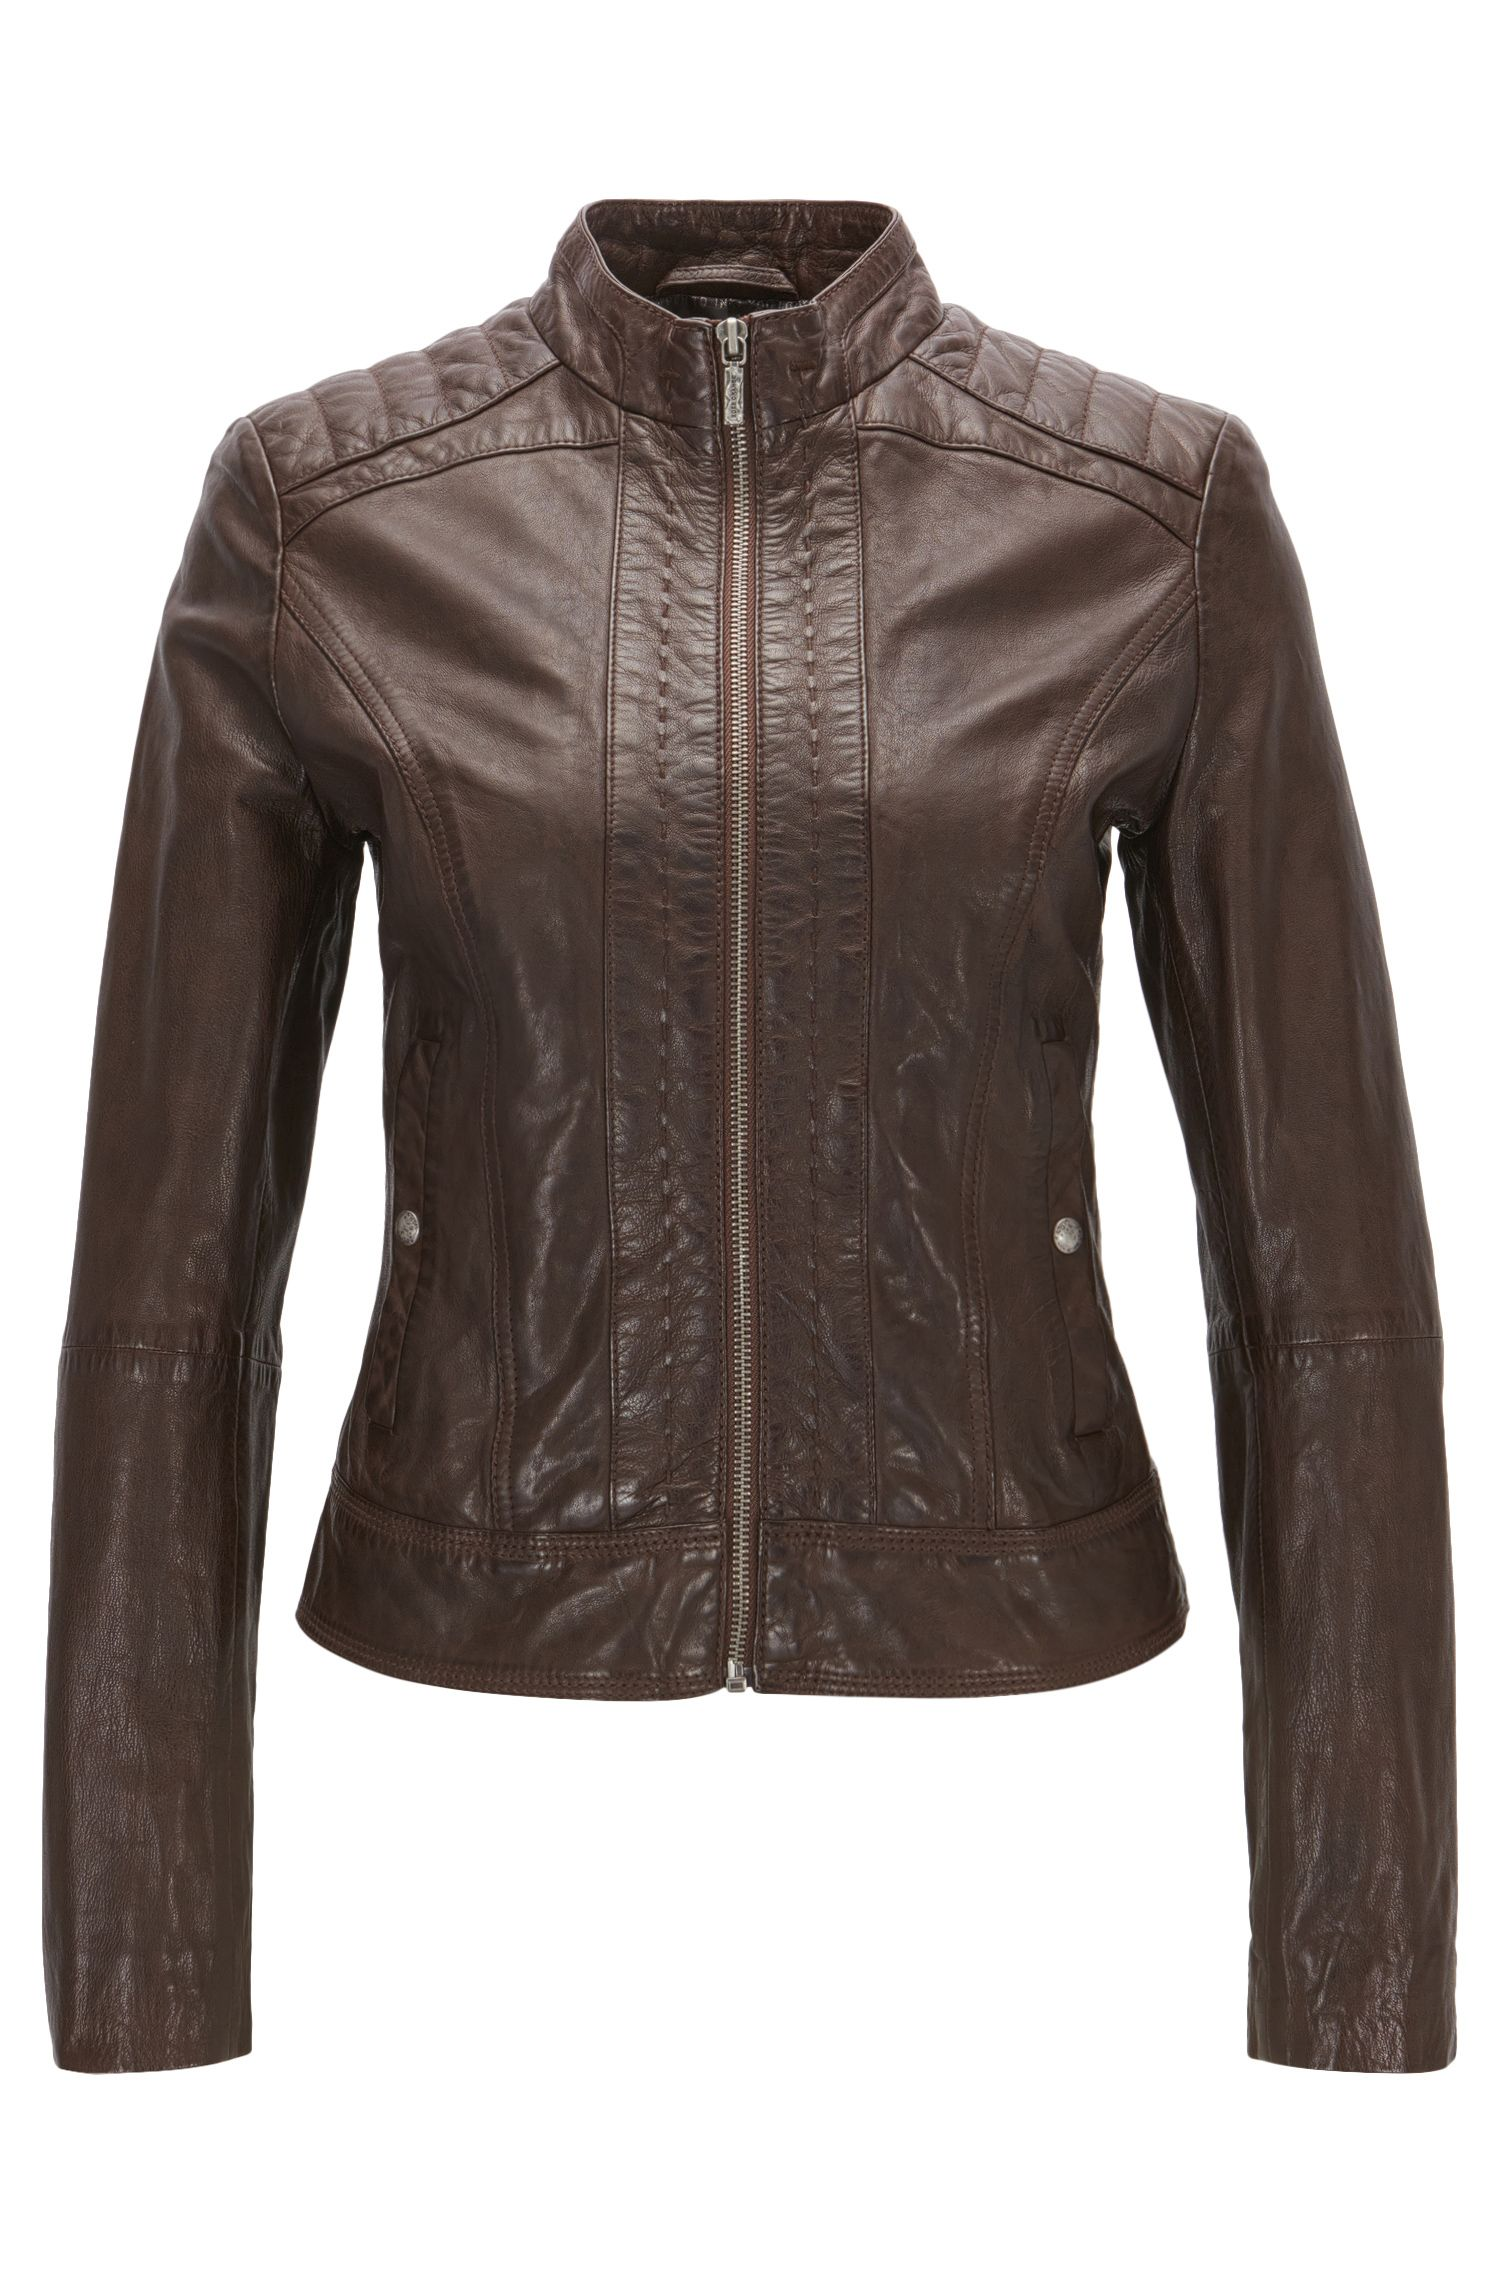 Symmetrical leather jacket in a slim fit